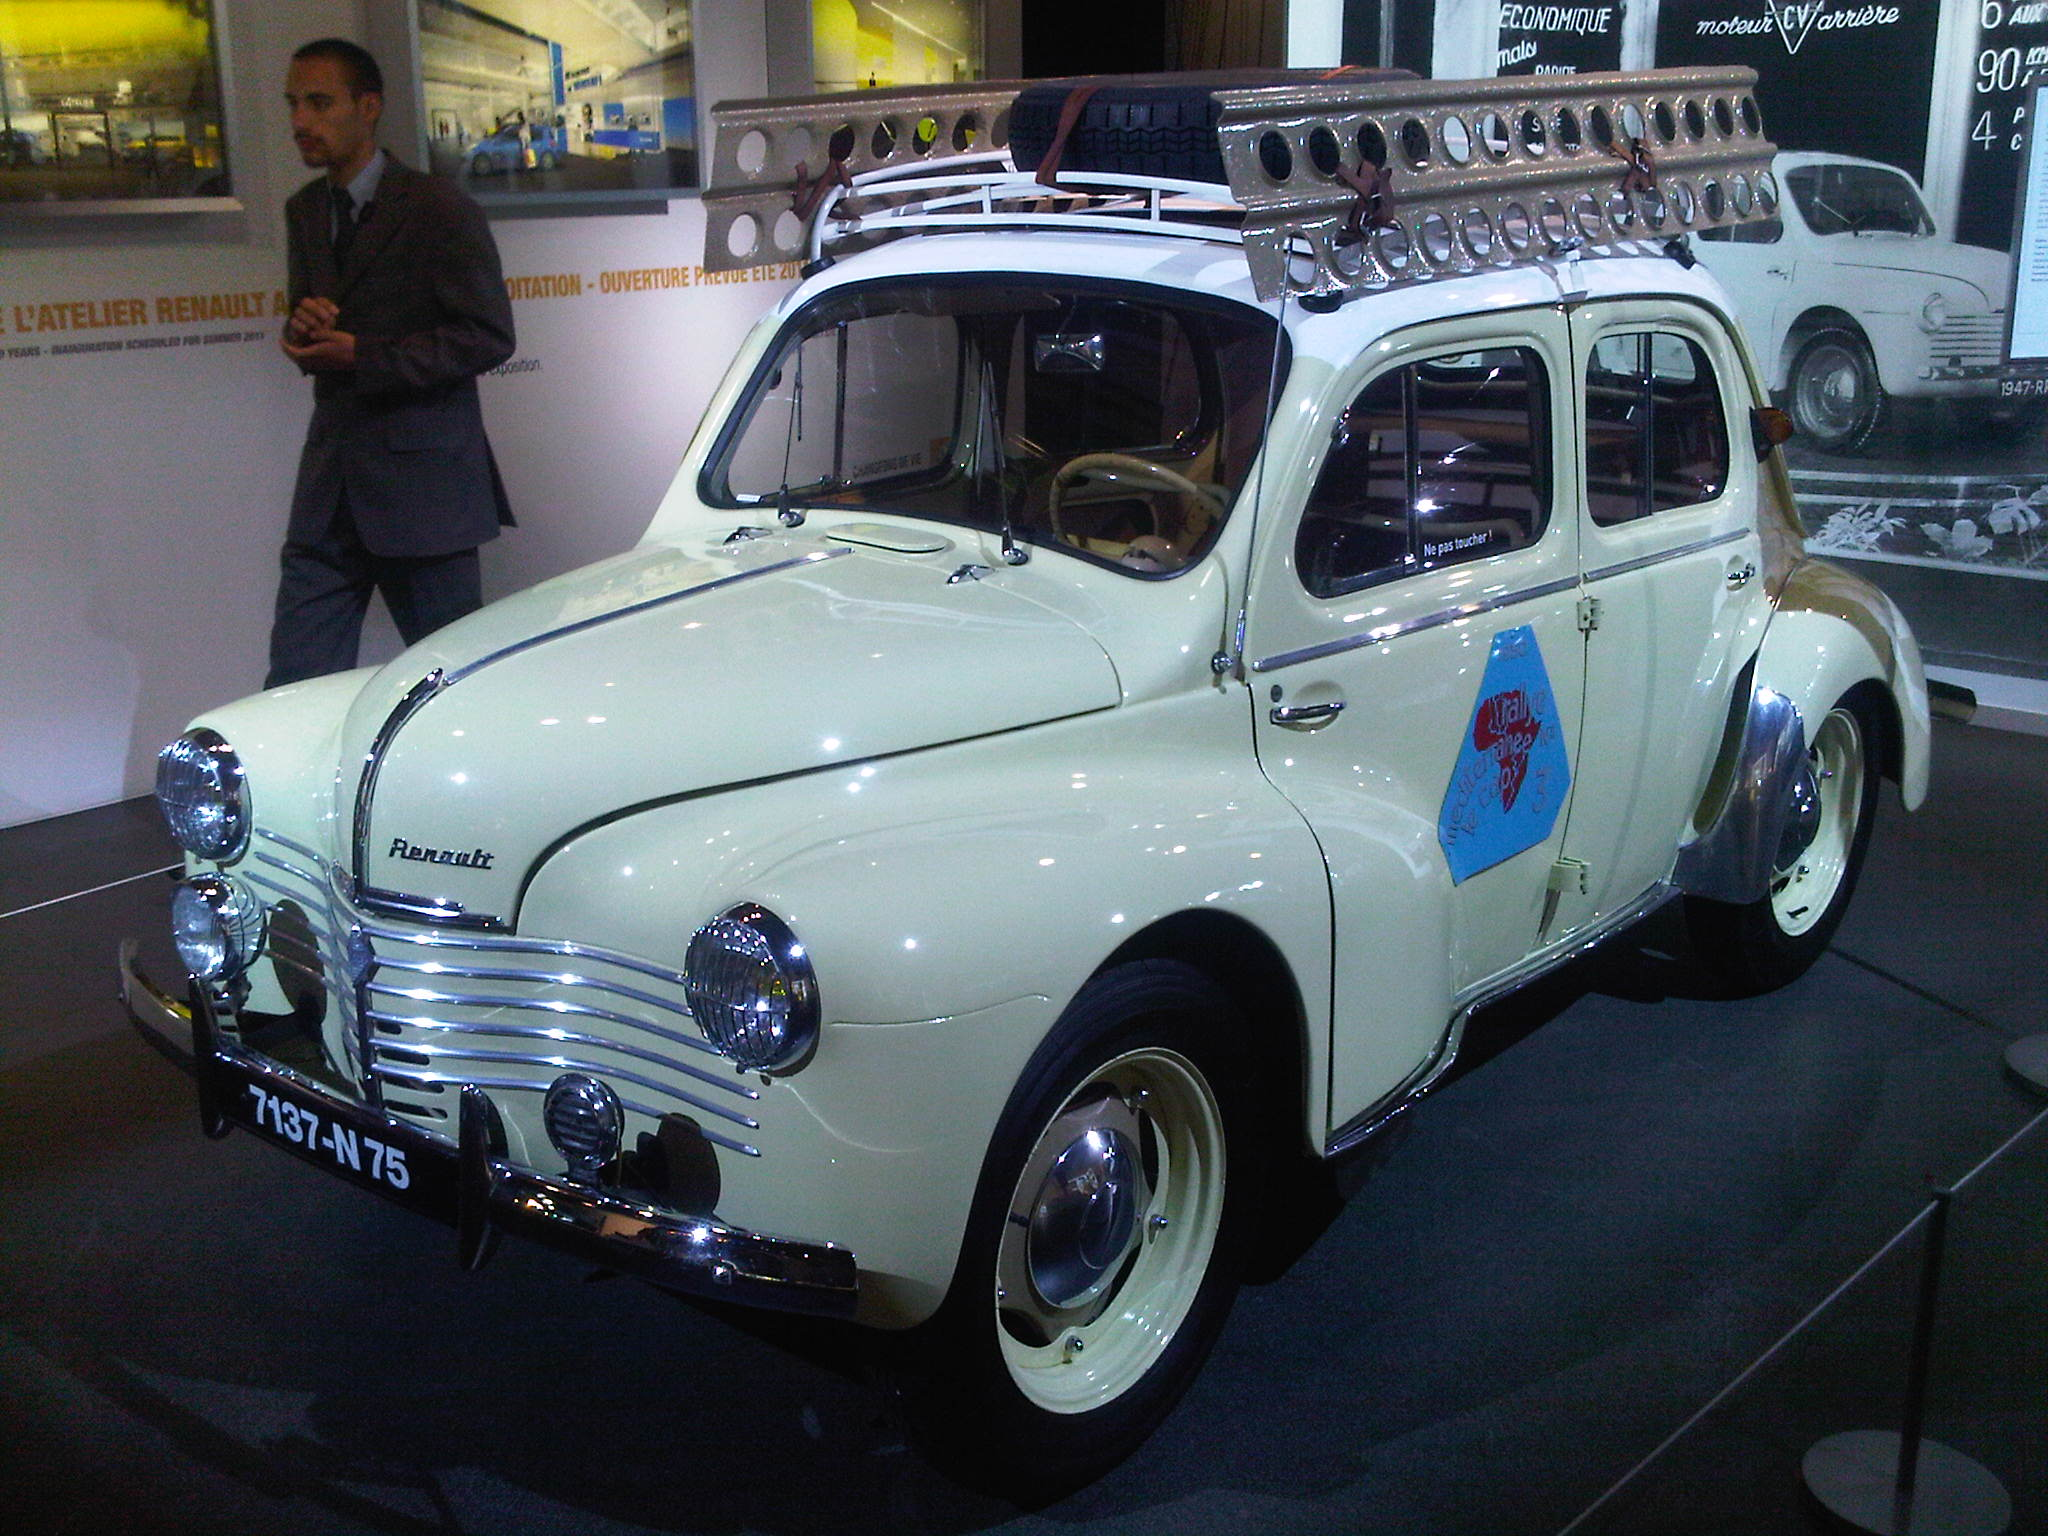 blanche avg AtelierRenault100ans-14